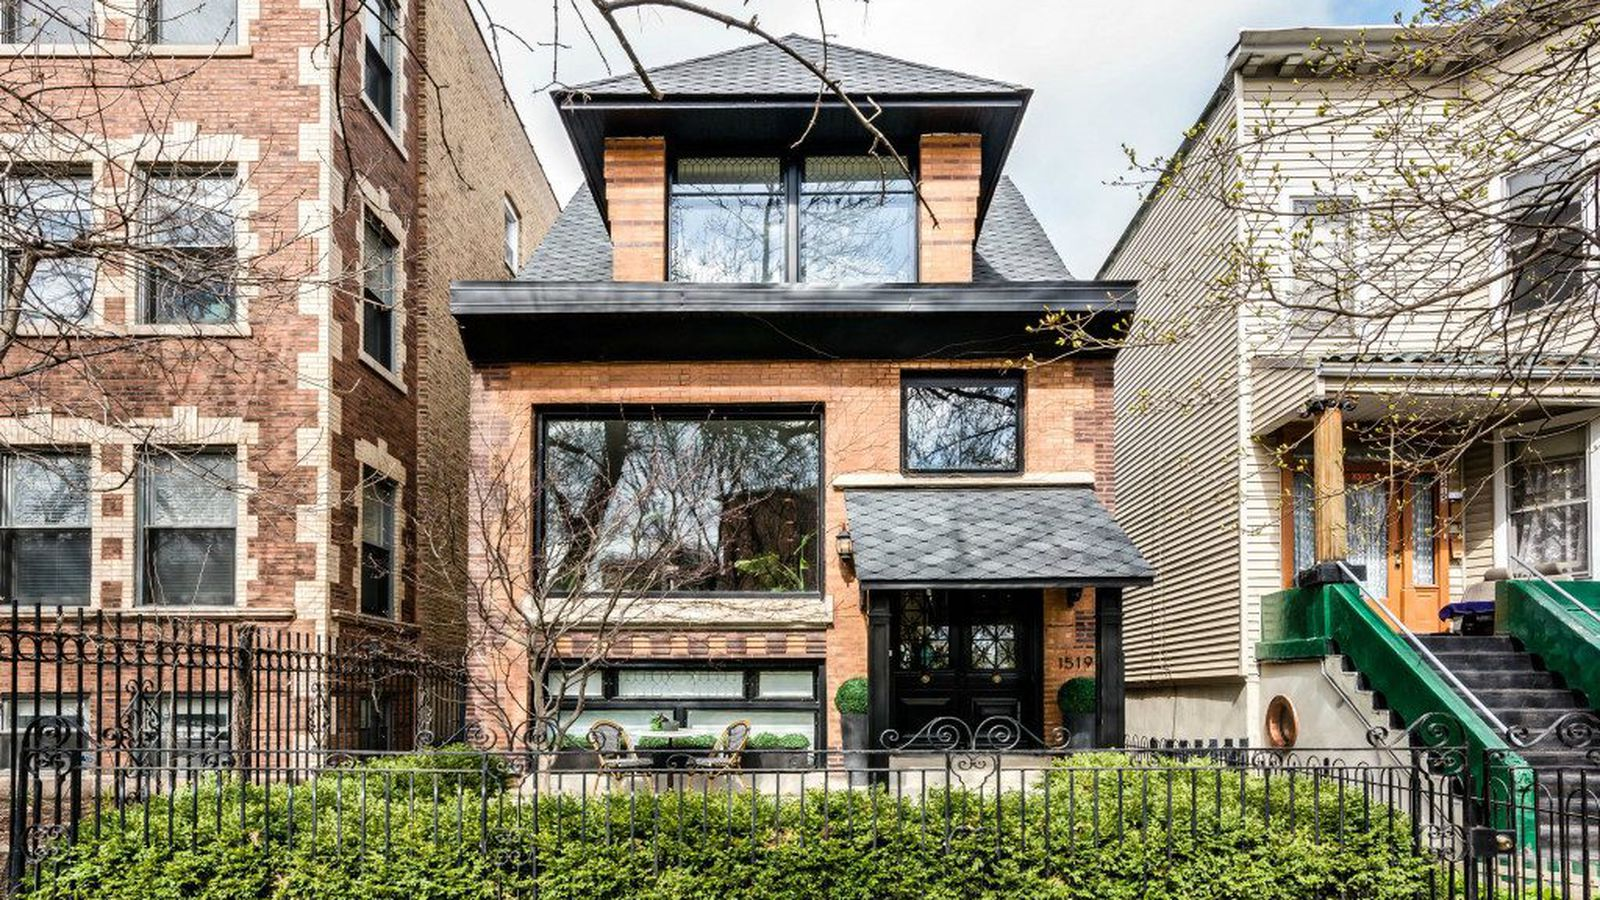 Kitchen Remodeling Program Wicker Park Home Owned By 'kitchen Crashers' Host Wants $1